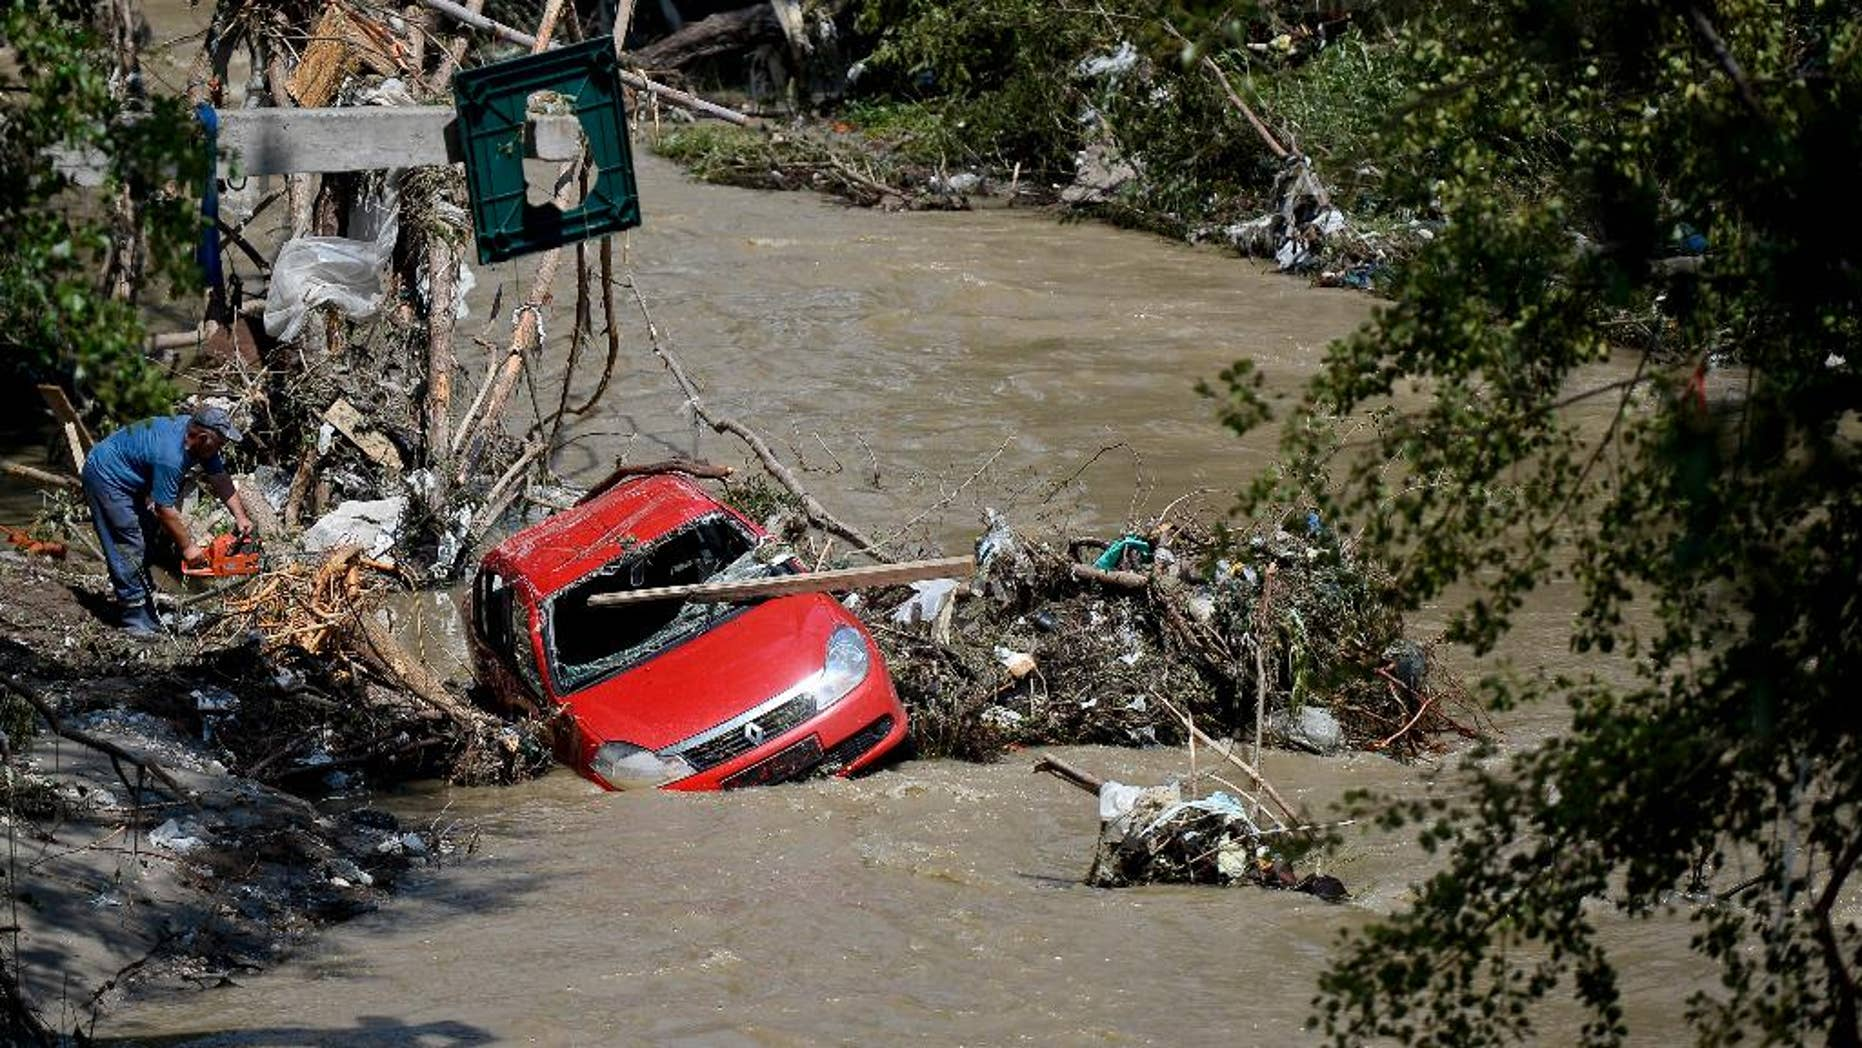 A man uses a chainsaw to cut tree stumps to free a washed up car carried downstream by the recent flash flood, in Bascov city, Arges, Romania, Wednesday, July 30, 2014. Over a thousand people were evacuated and 99 homes were destroyed as floods raged in the south eastern part of Romania. (AP Photo/Octav Ganea, Mediafax) ROMANIA OUT